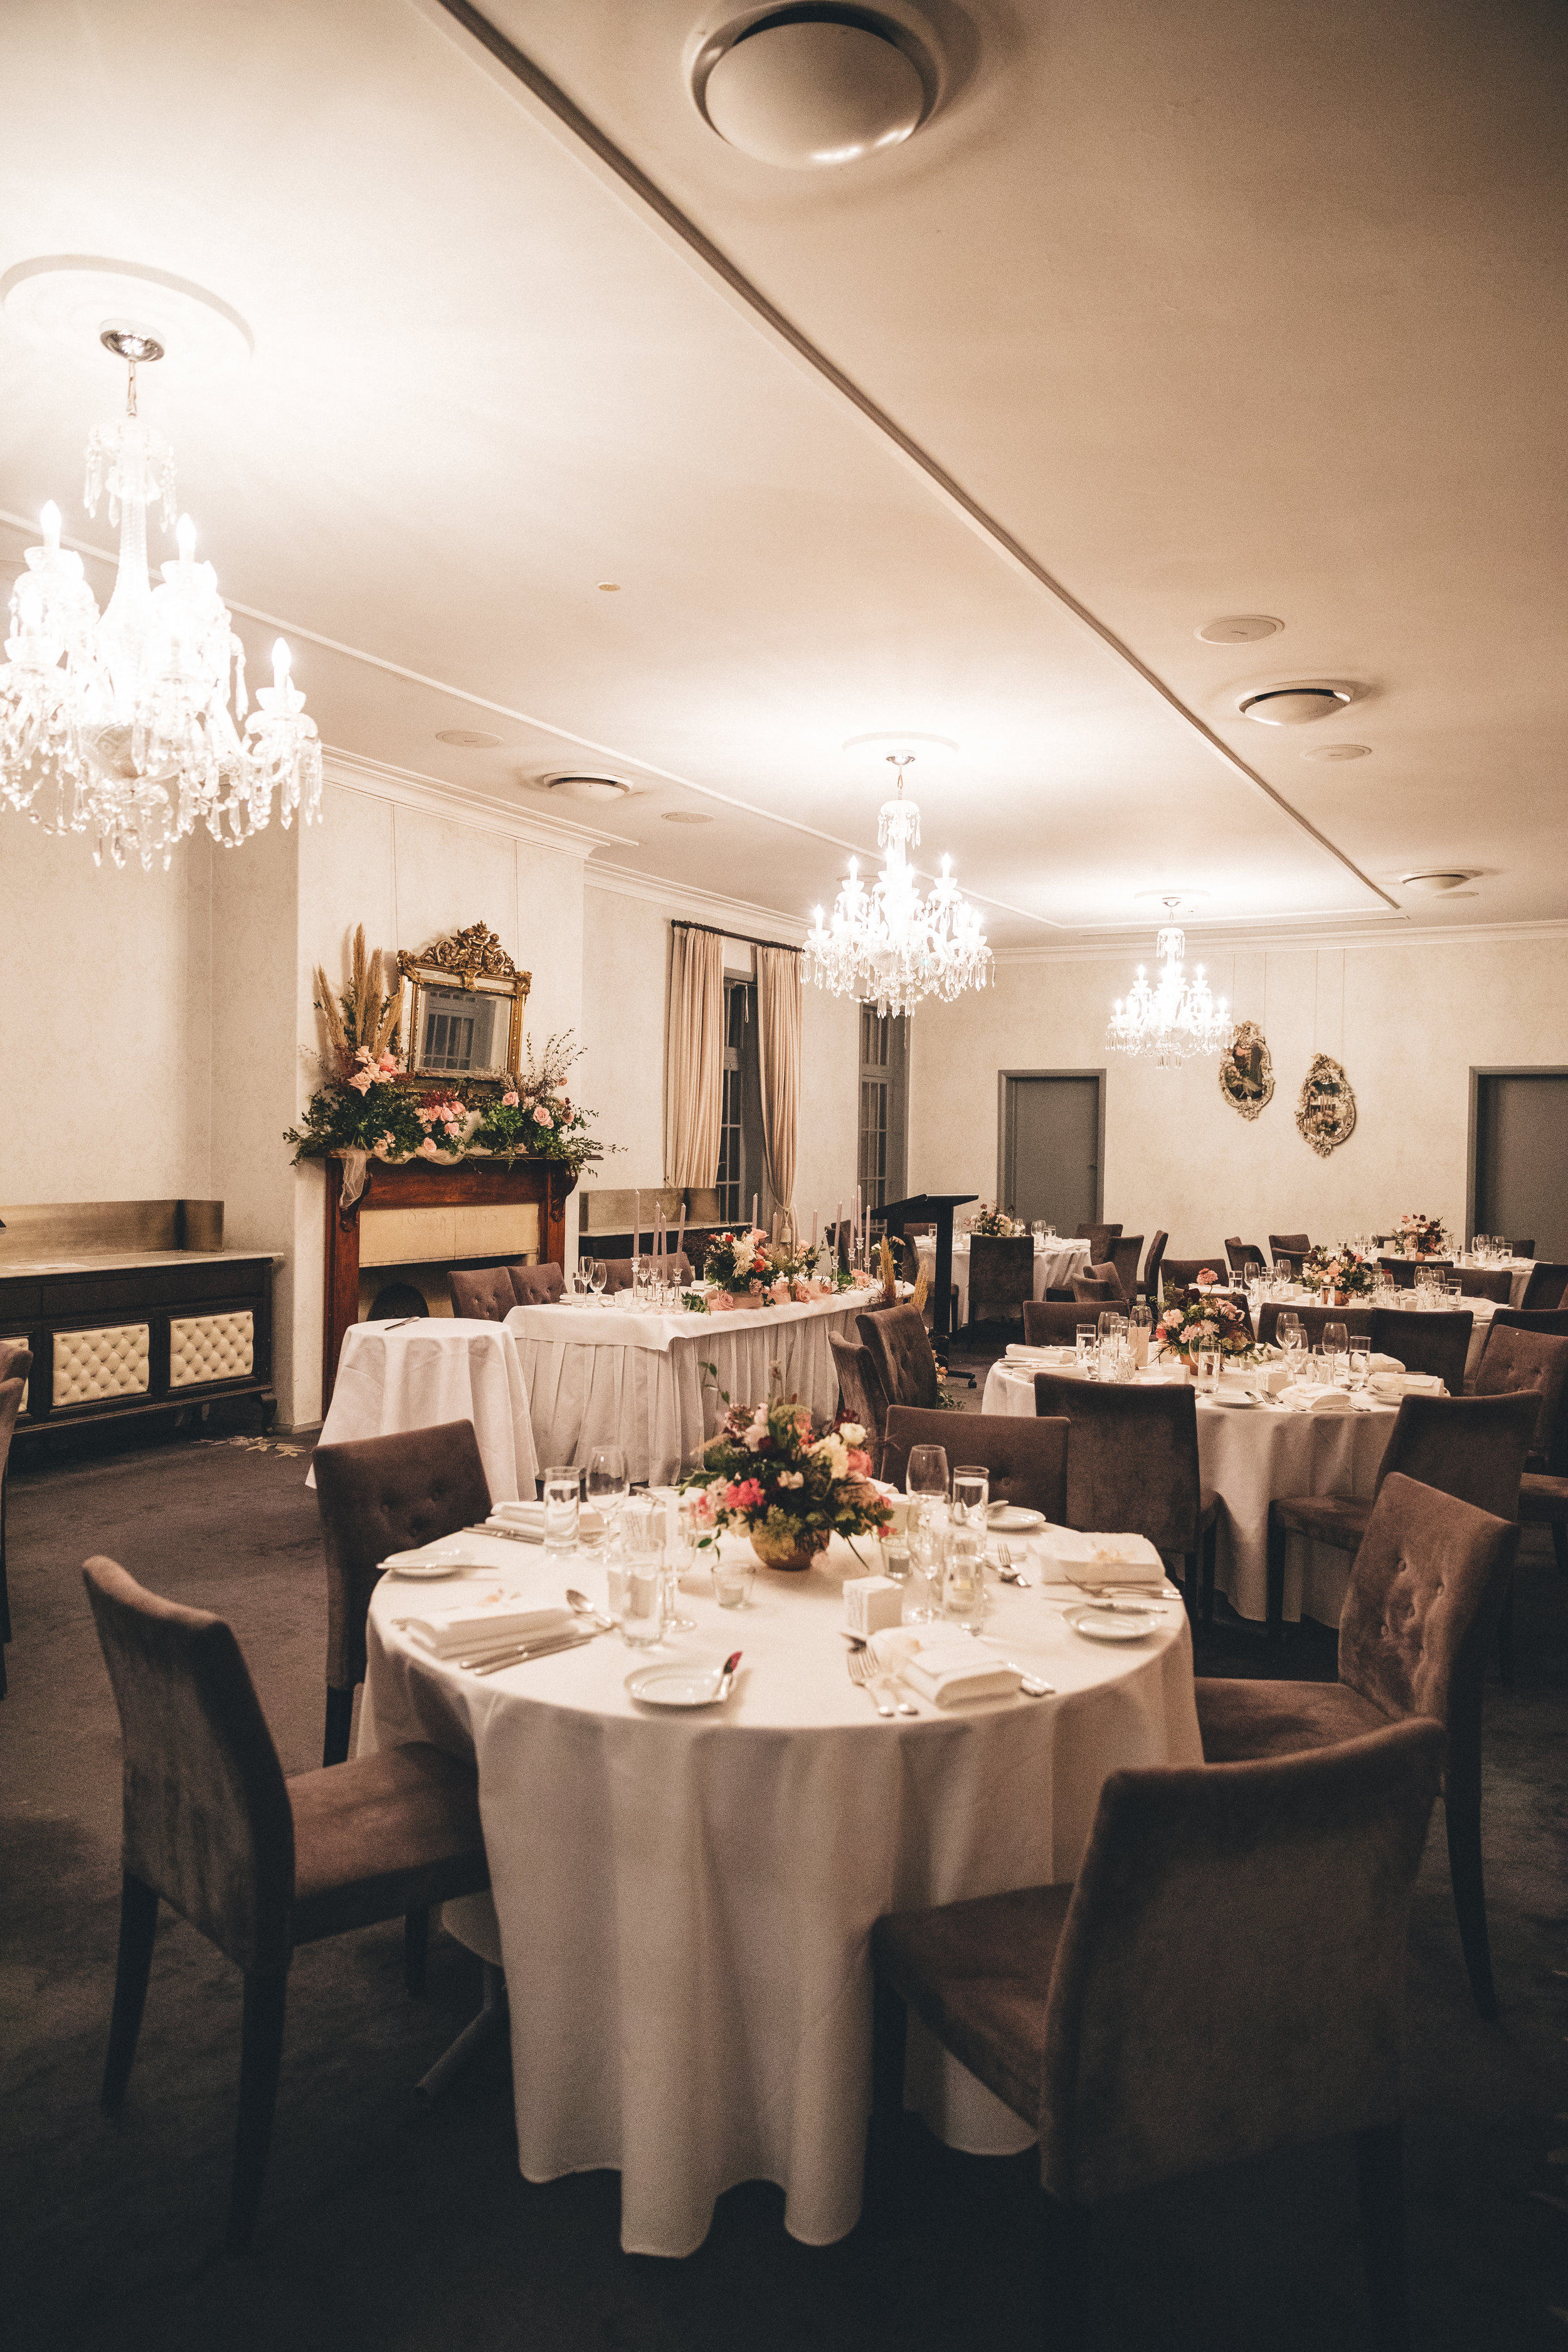 Lighting - Consider adding chandeliers, fairy lights or other types of lighting to further brighten up a moody space and create a touch of grandeur. Make sure to check with the venue to see what they allow.